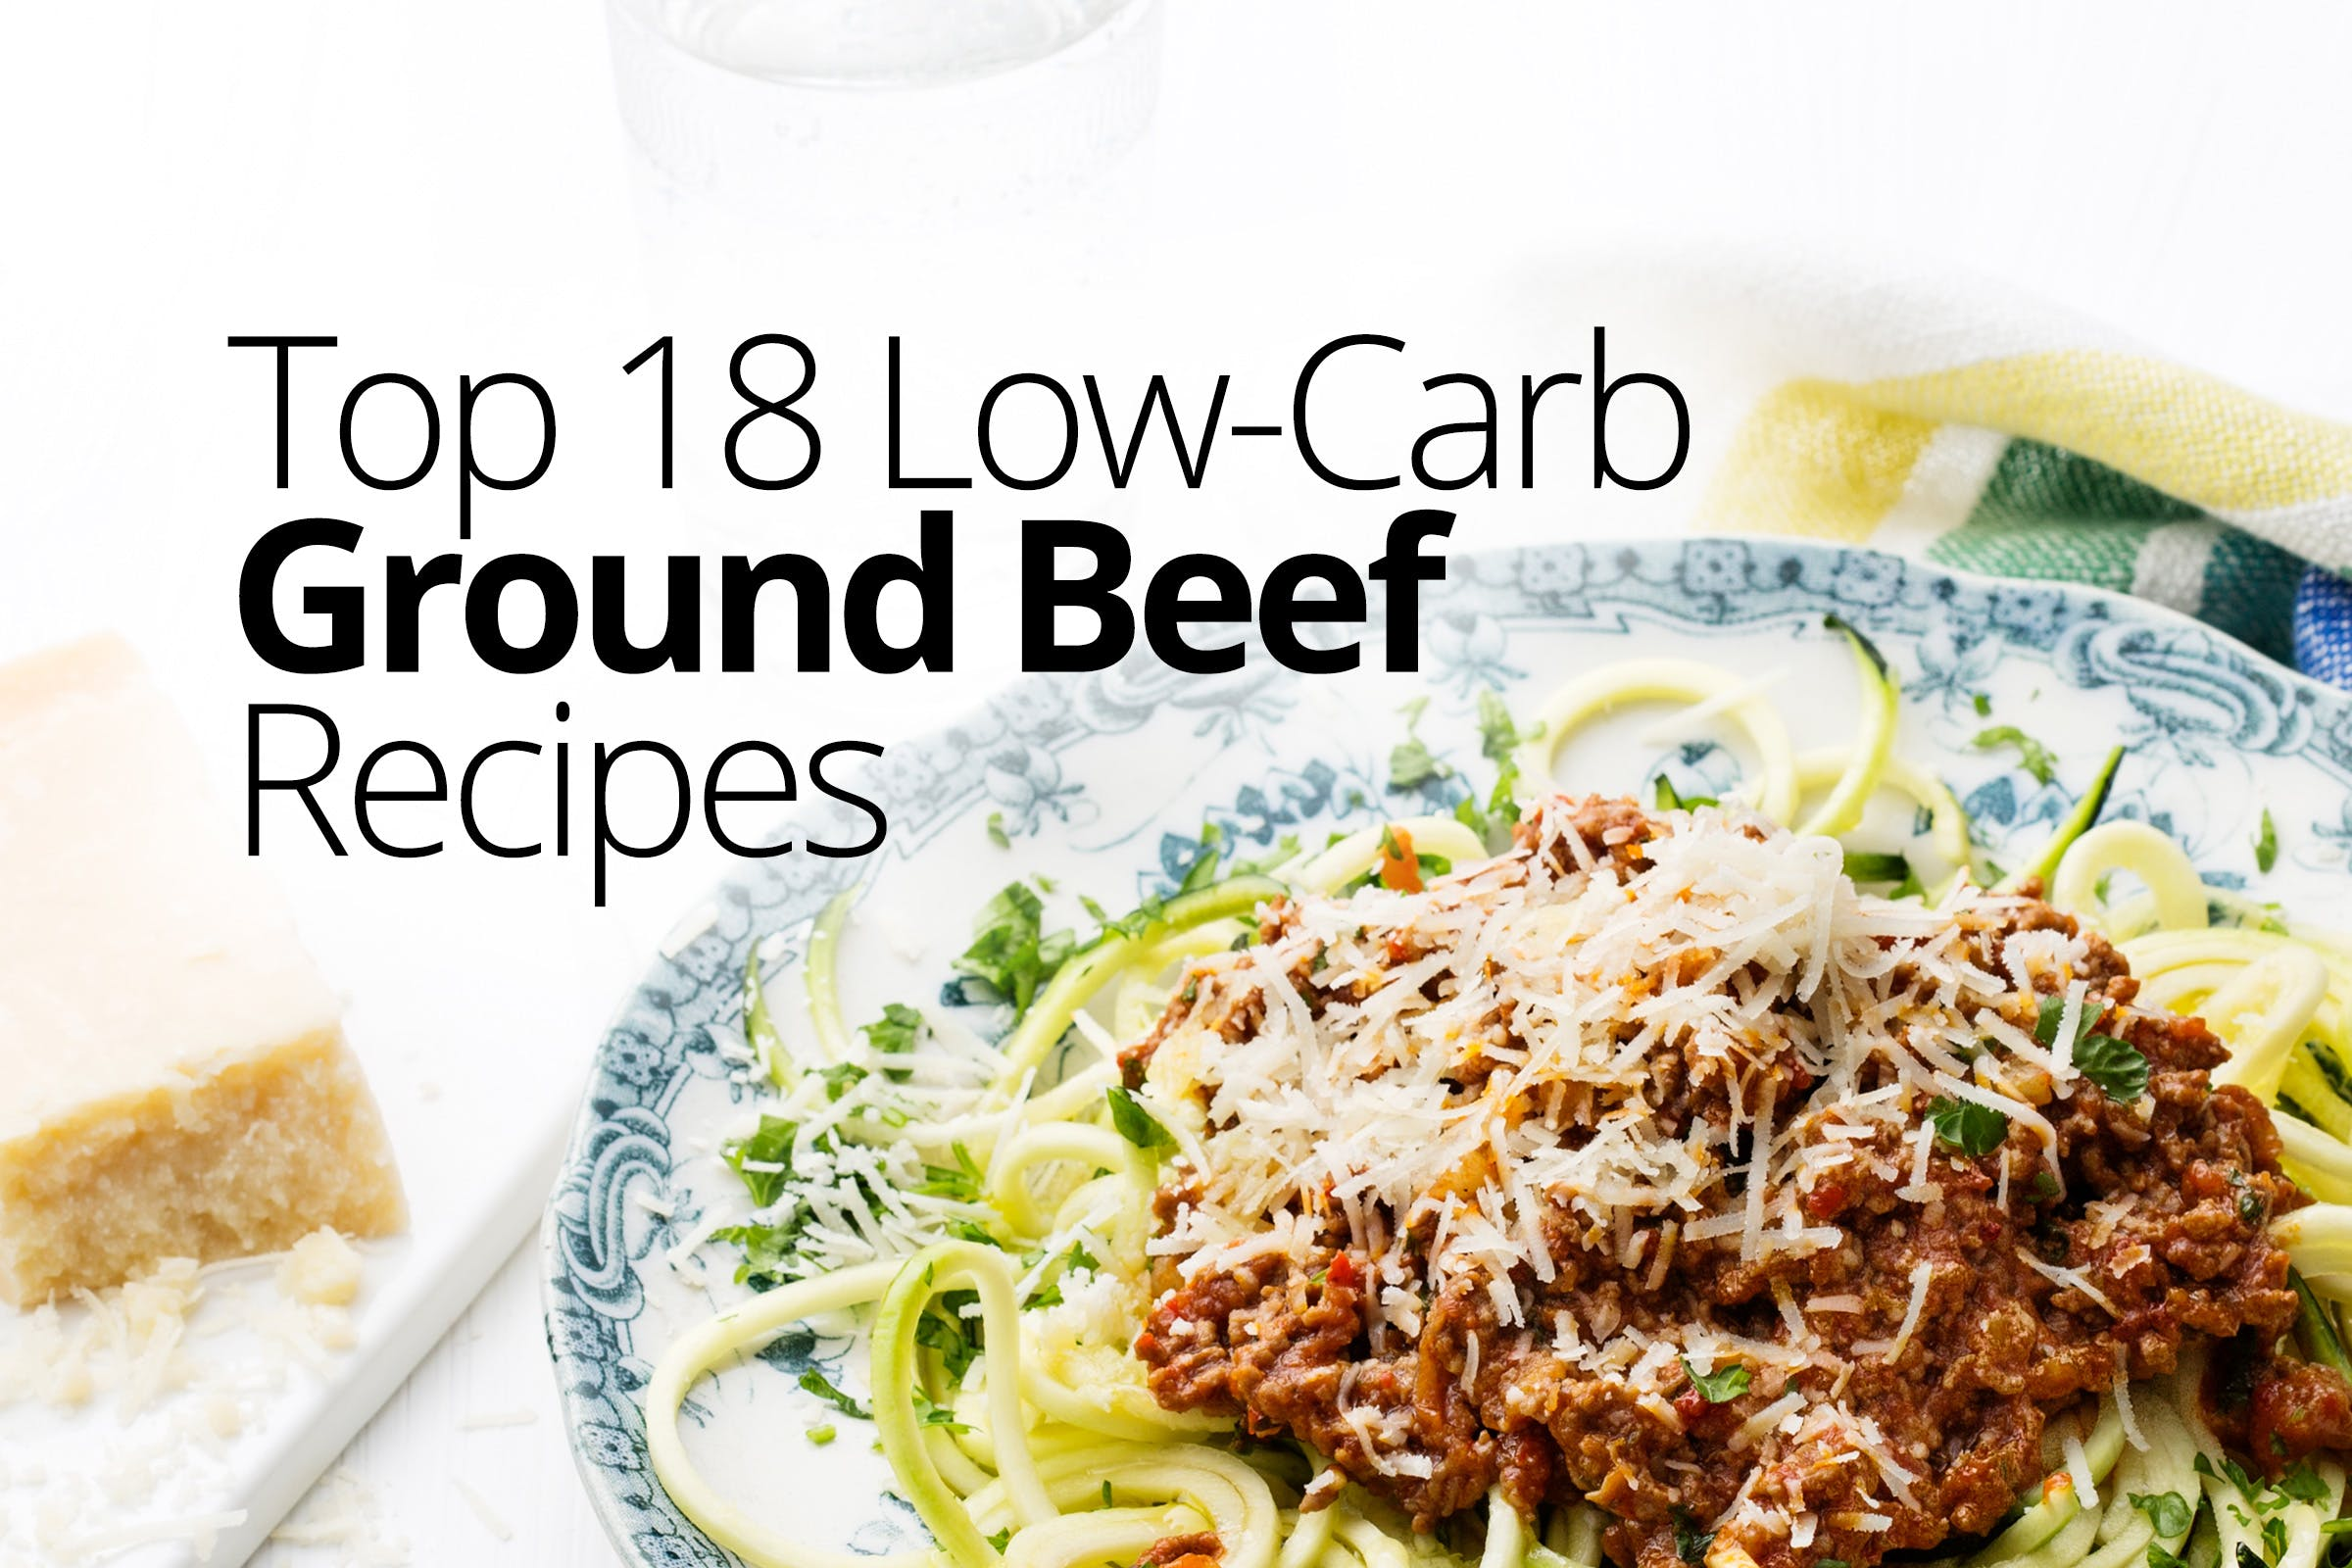 Low-carb and keto ground-beef recipes